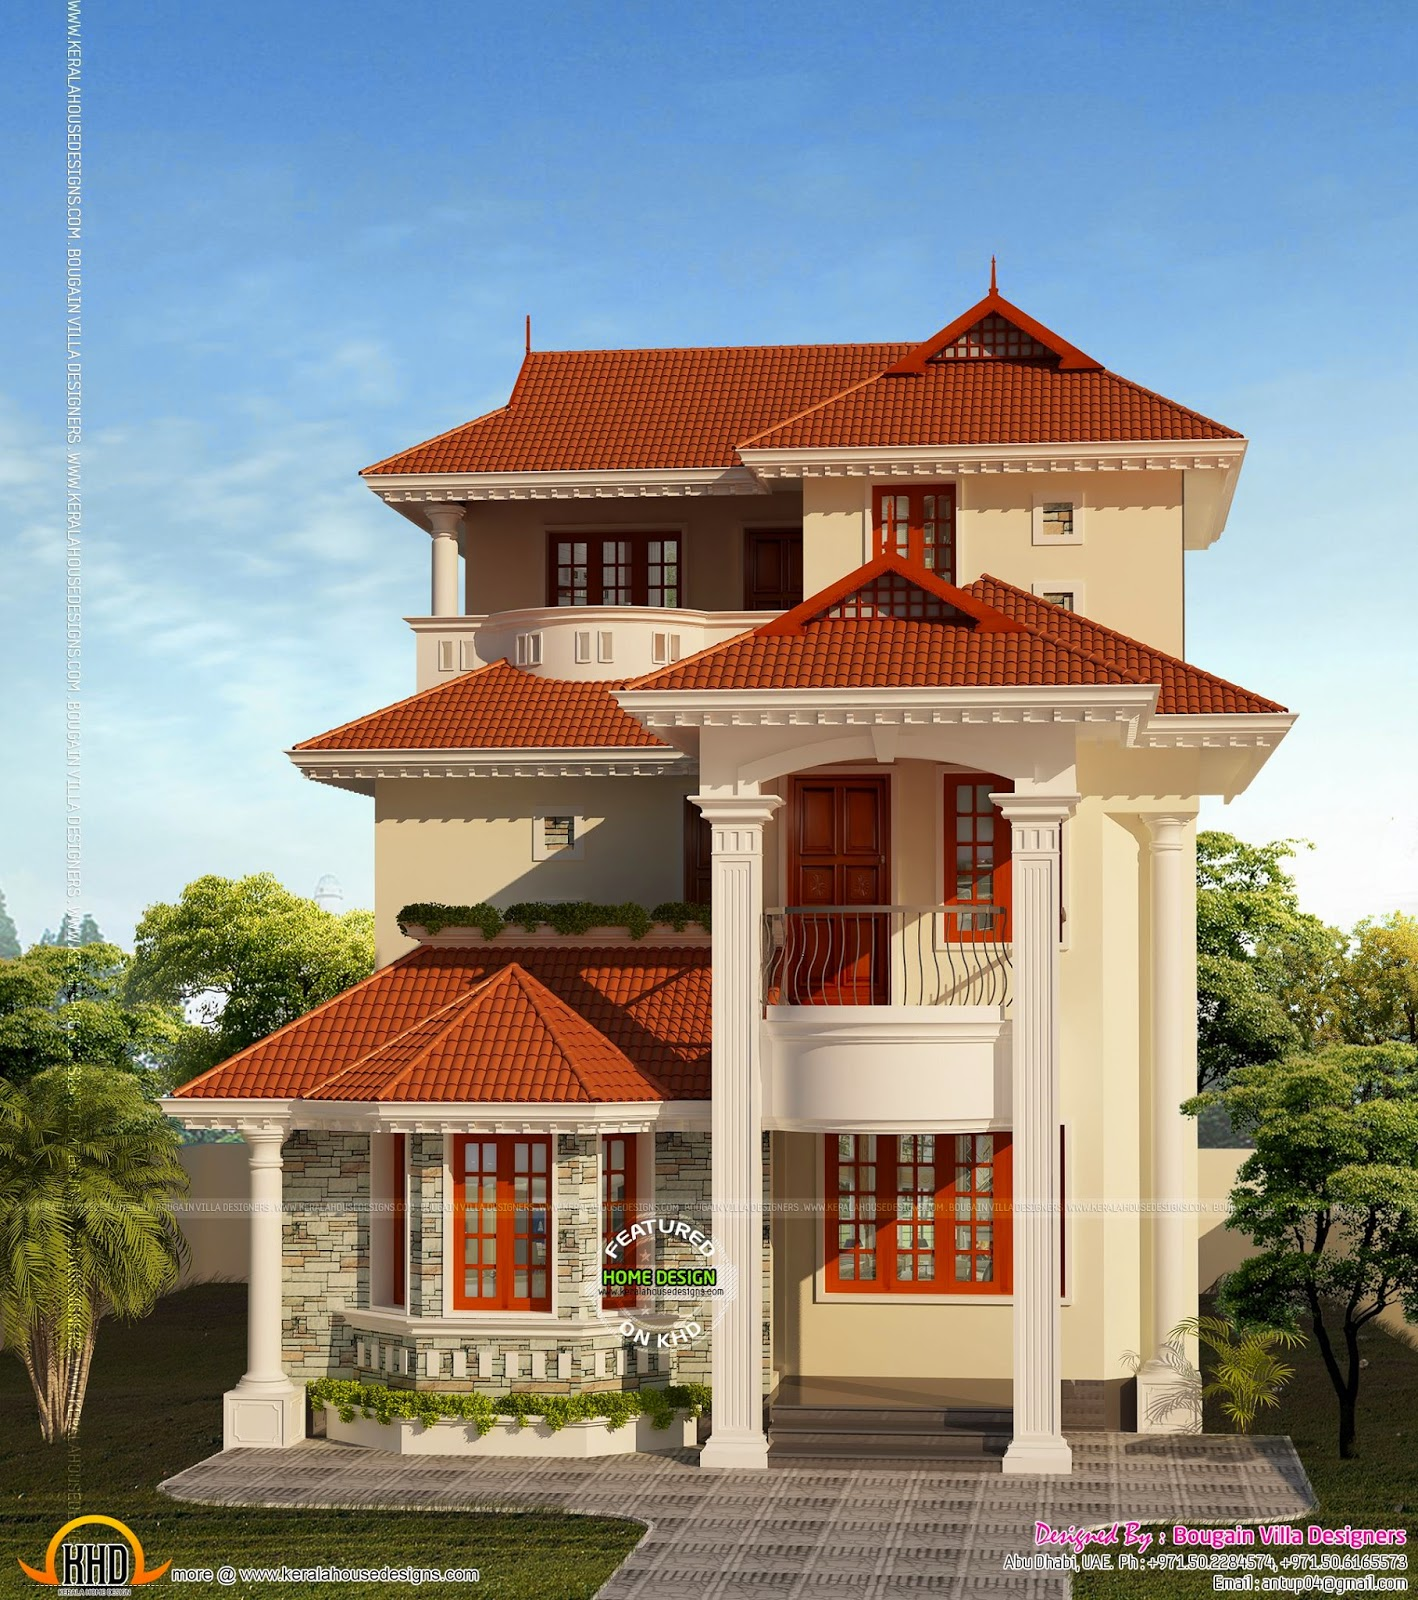 Small plot house plan kerala home design and floor plans for Small house design plans in india image